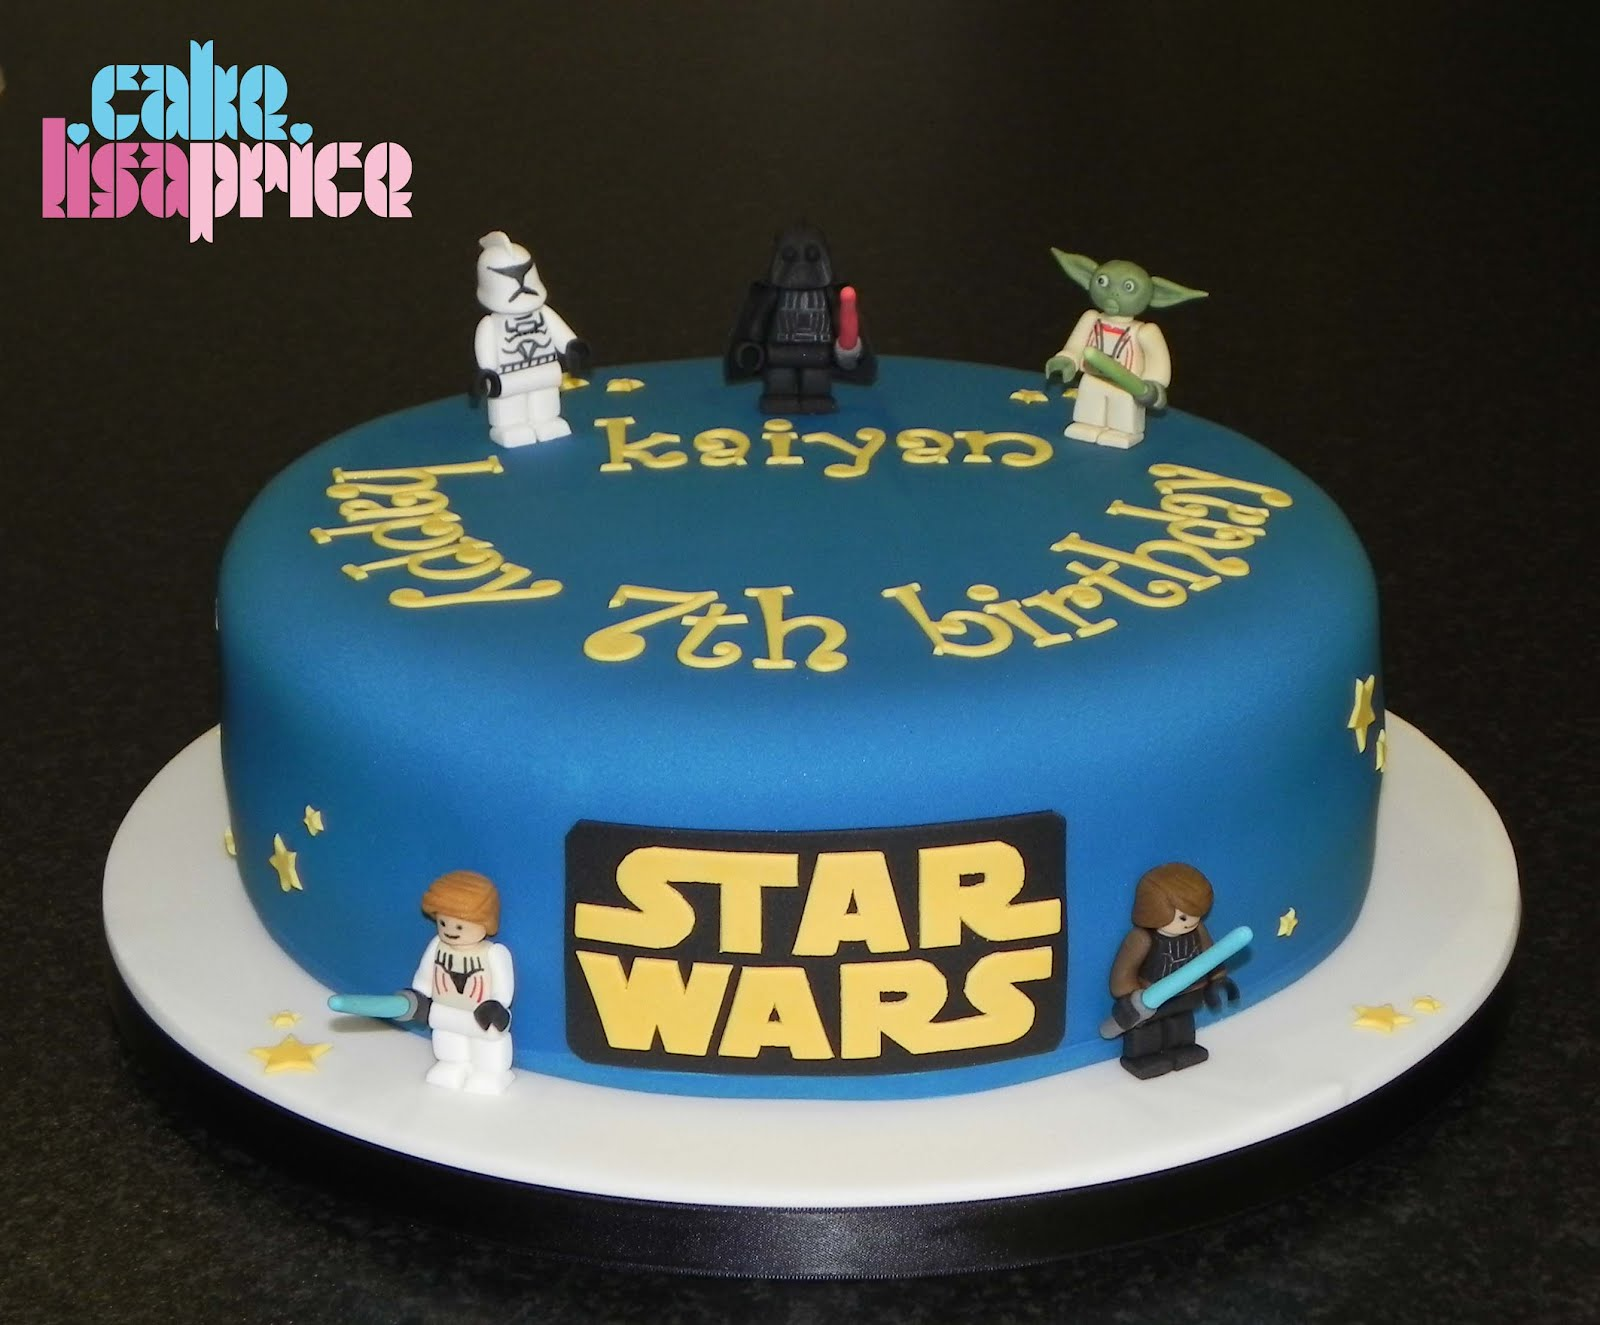 viewing star wars cake ideas and designs. Black Bedroom Furniture Sets. Home Design Ideas